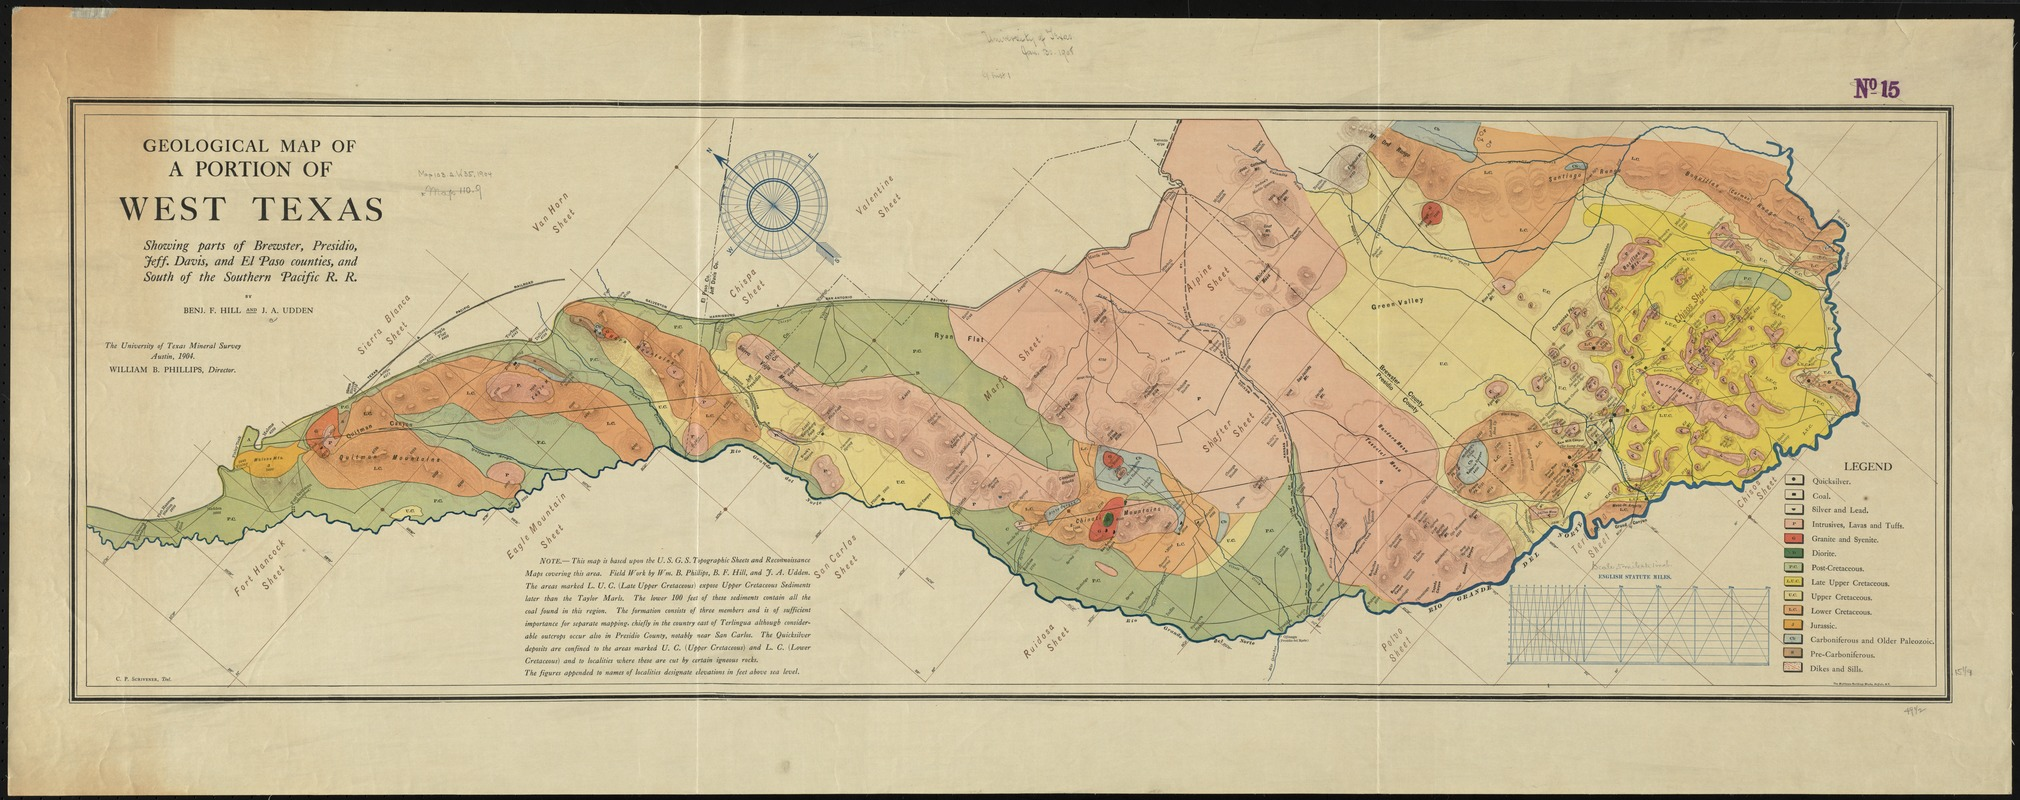 Geological map of a portion of West Texas